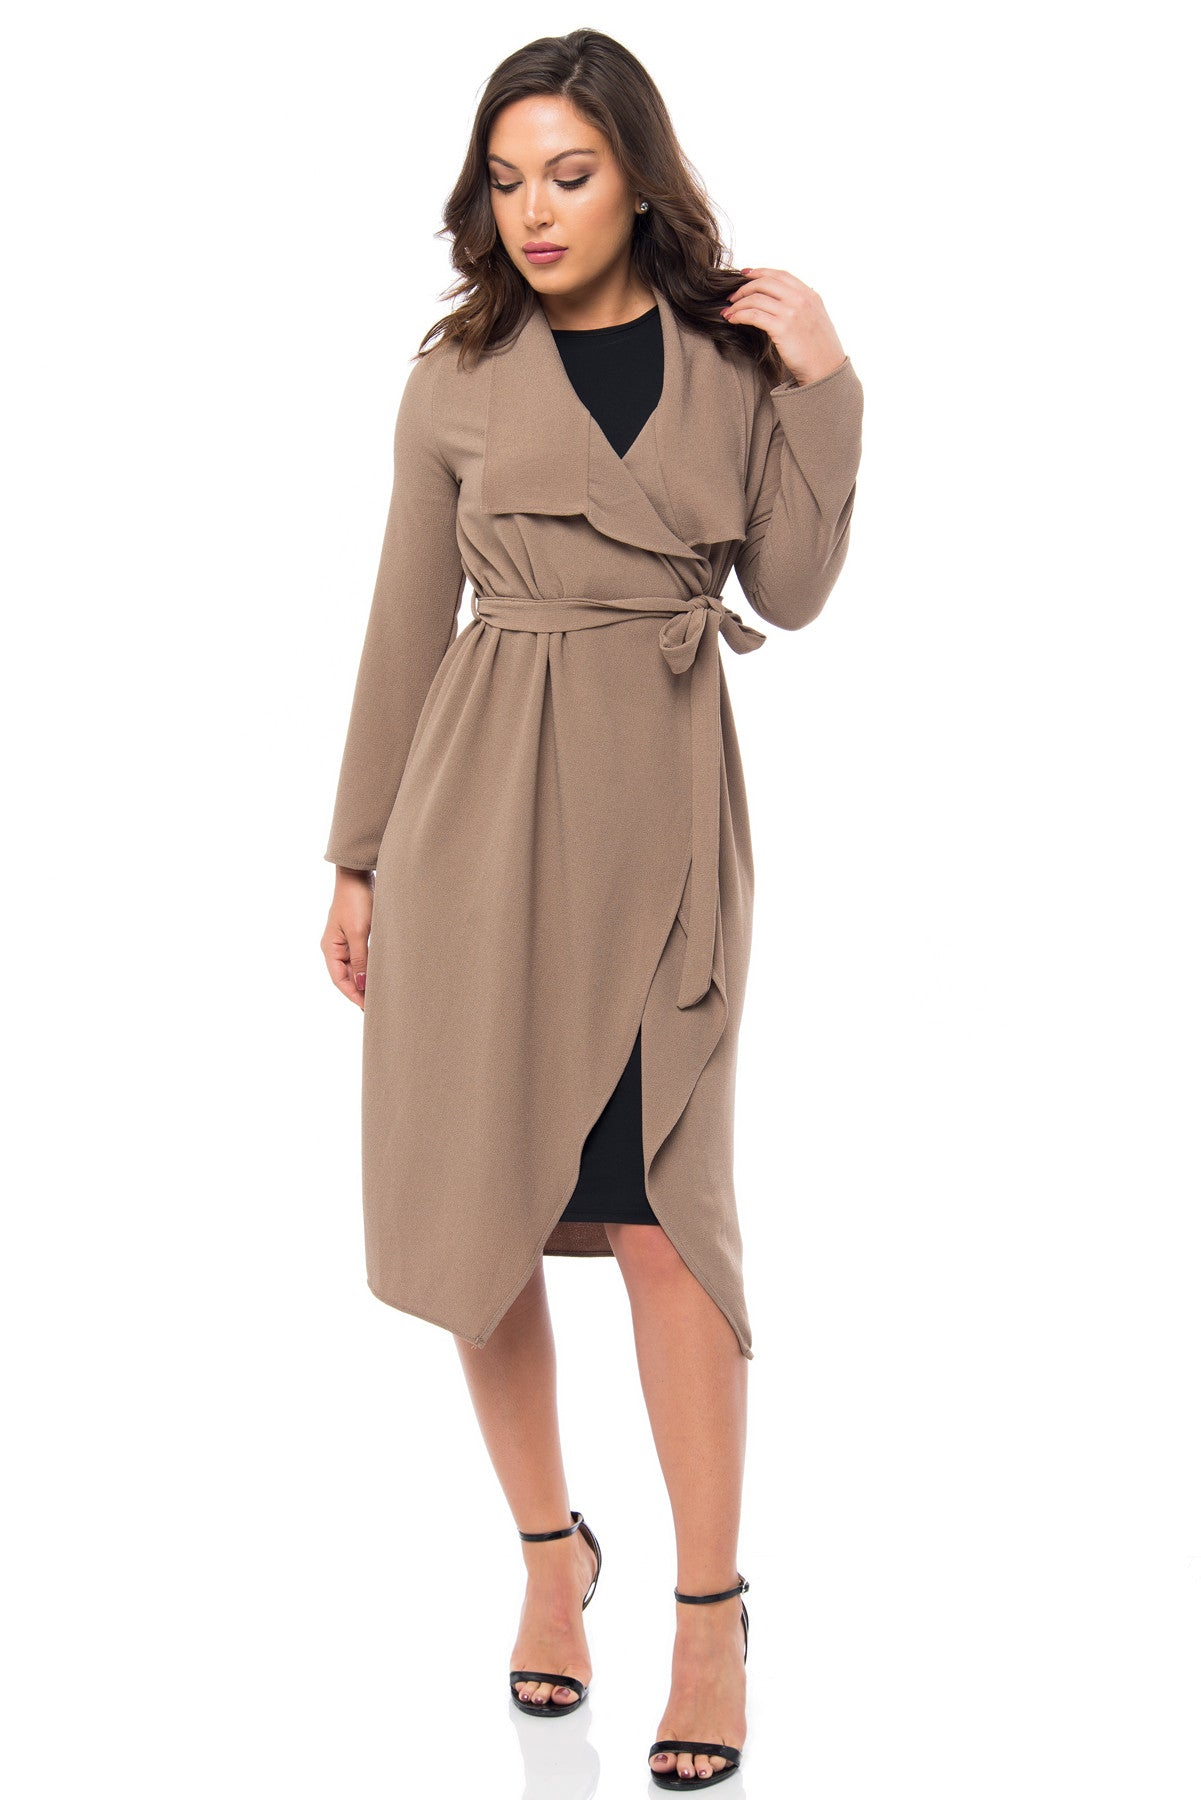 RESTOCK Walk With Me Taupe Duster - Fashion Effect Store  - 2